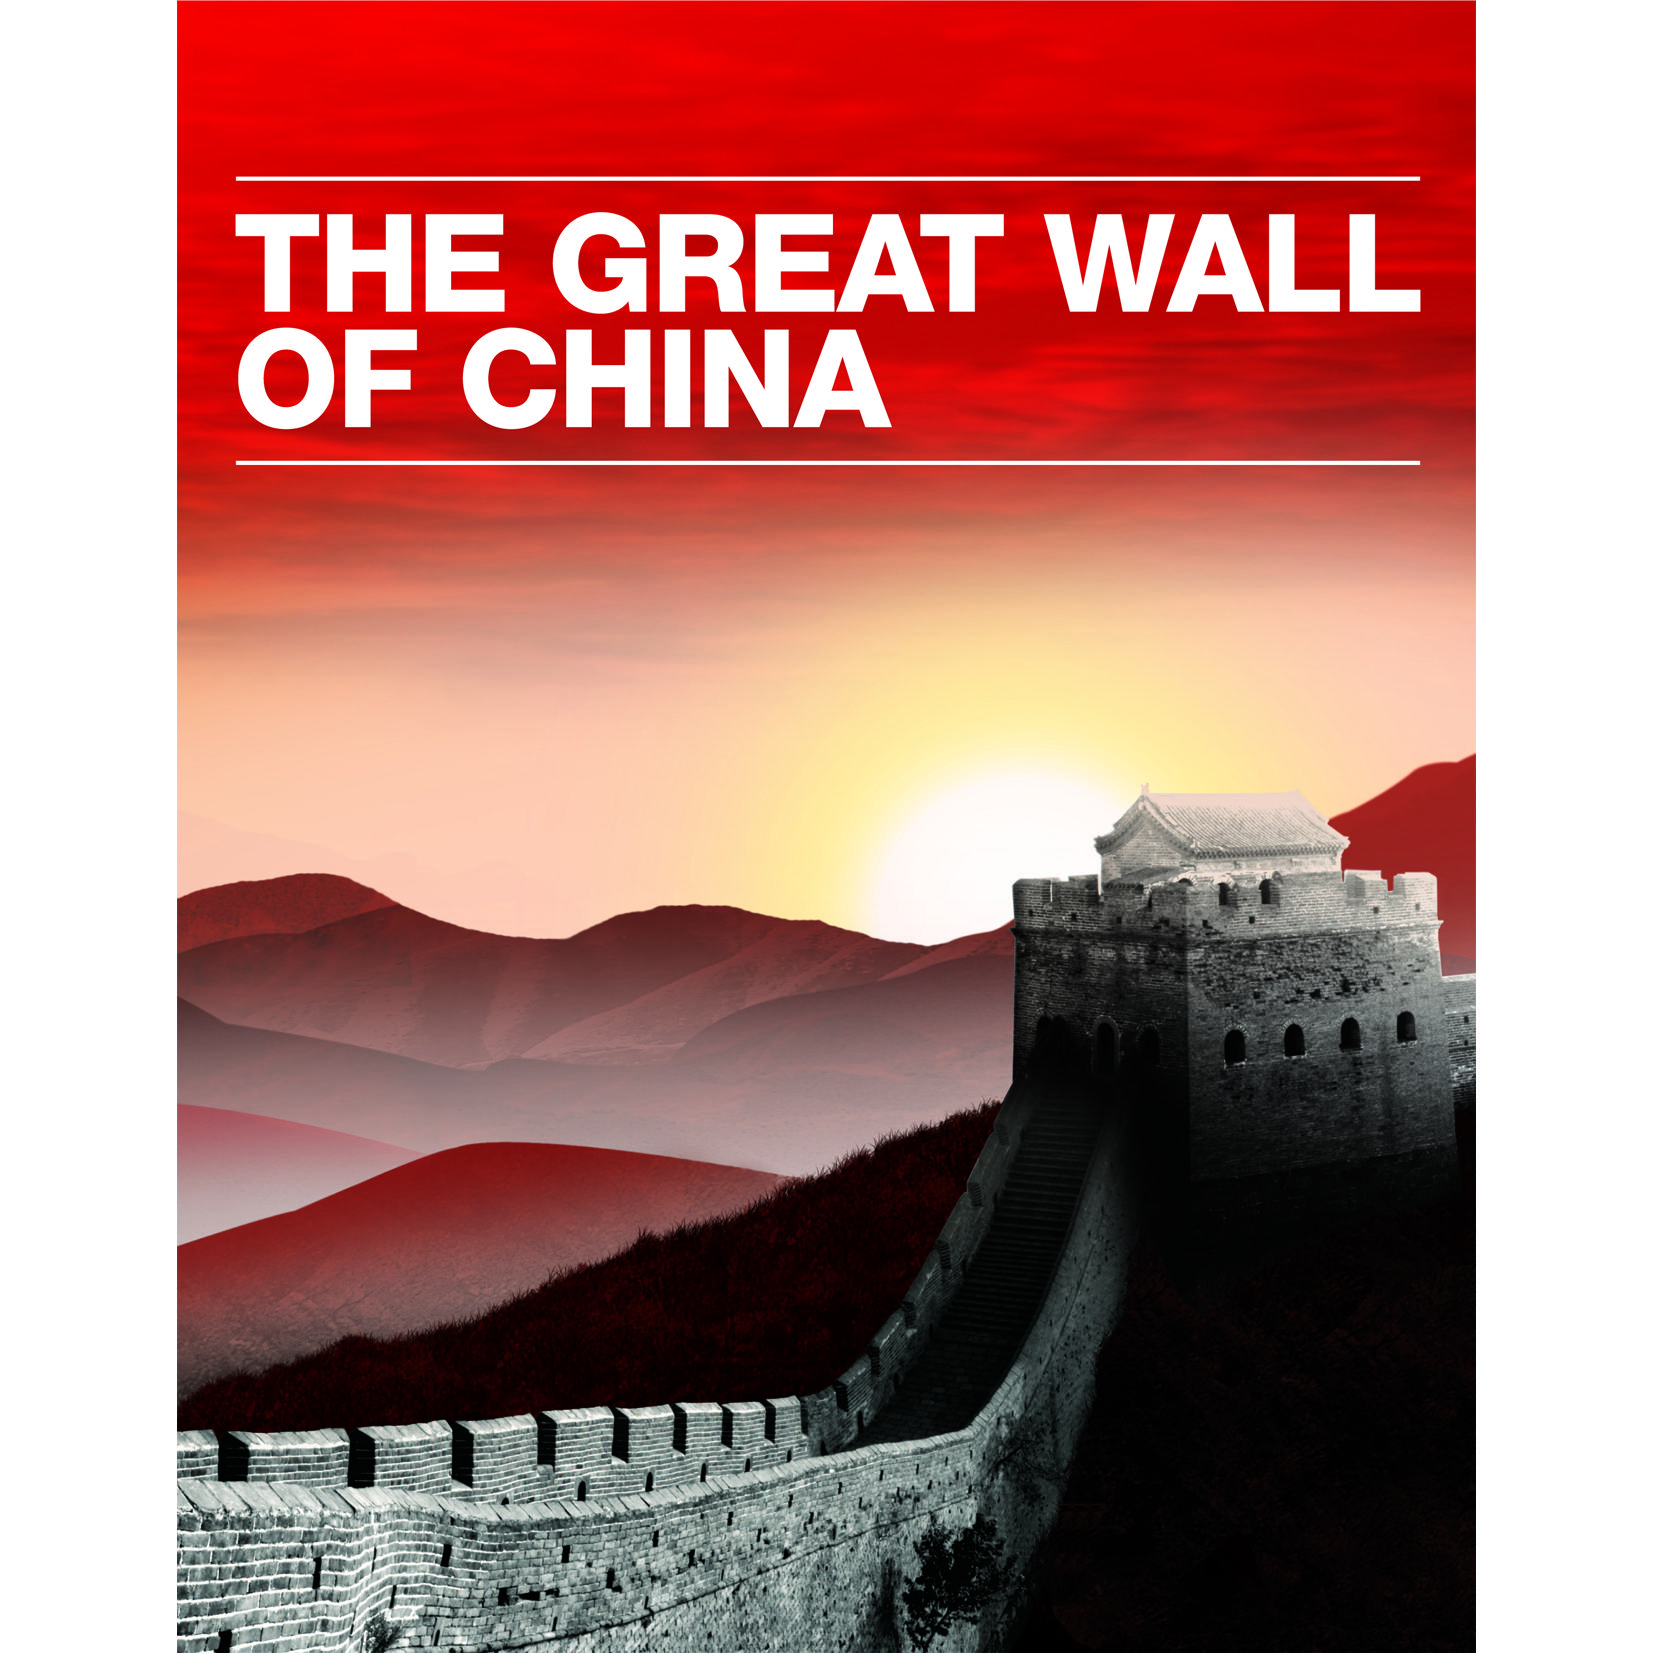 thesis statement about the great wall of china Thesis statements a thesis statement should be argumentative (debatable)  page 7 b tourism of the great wall of china page 8 c a chinese.